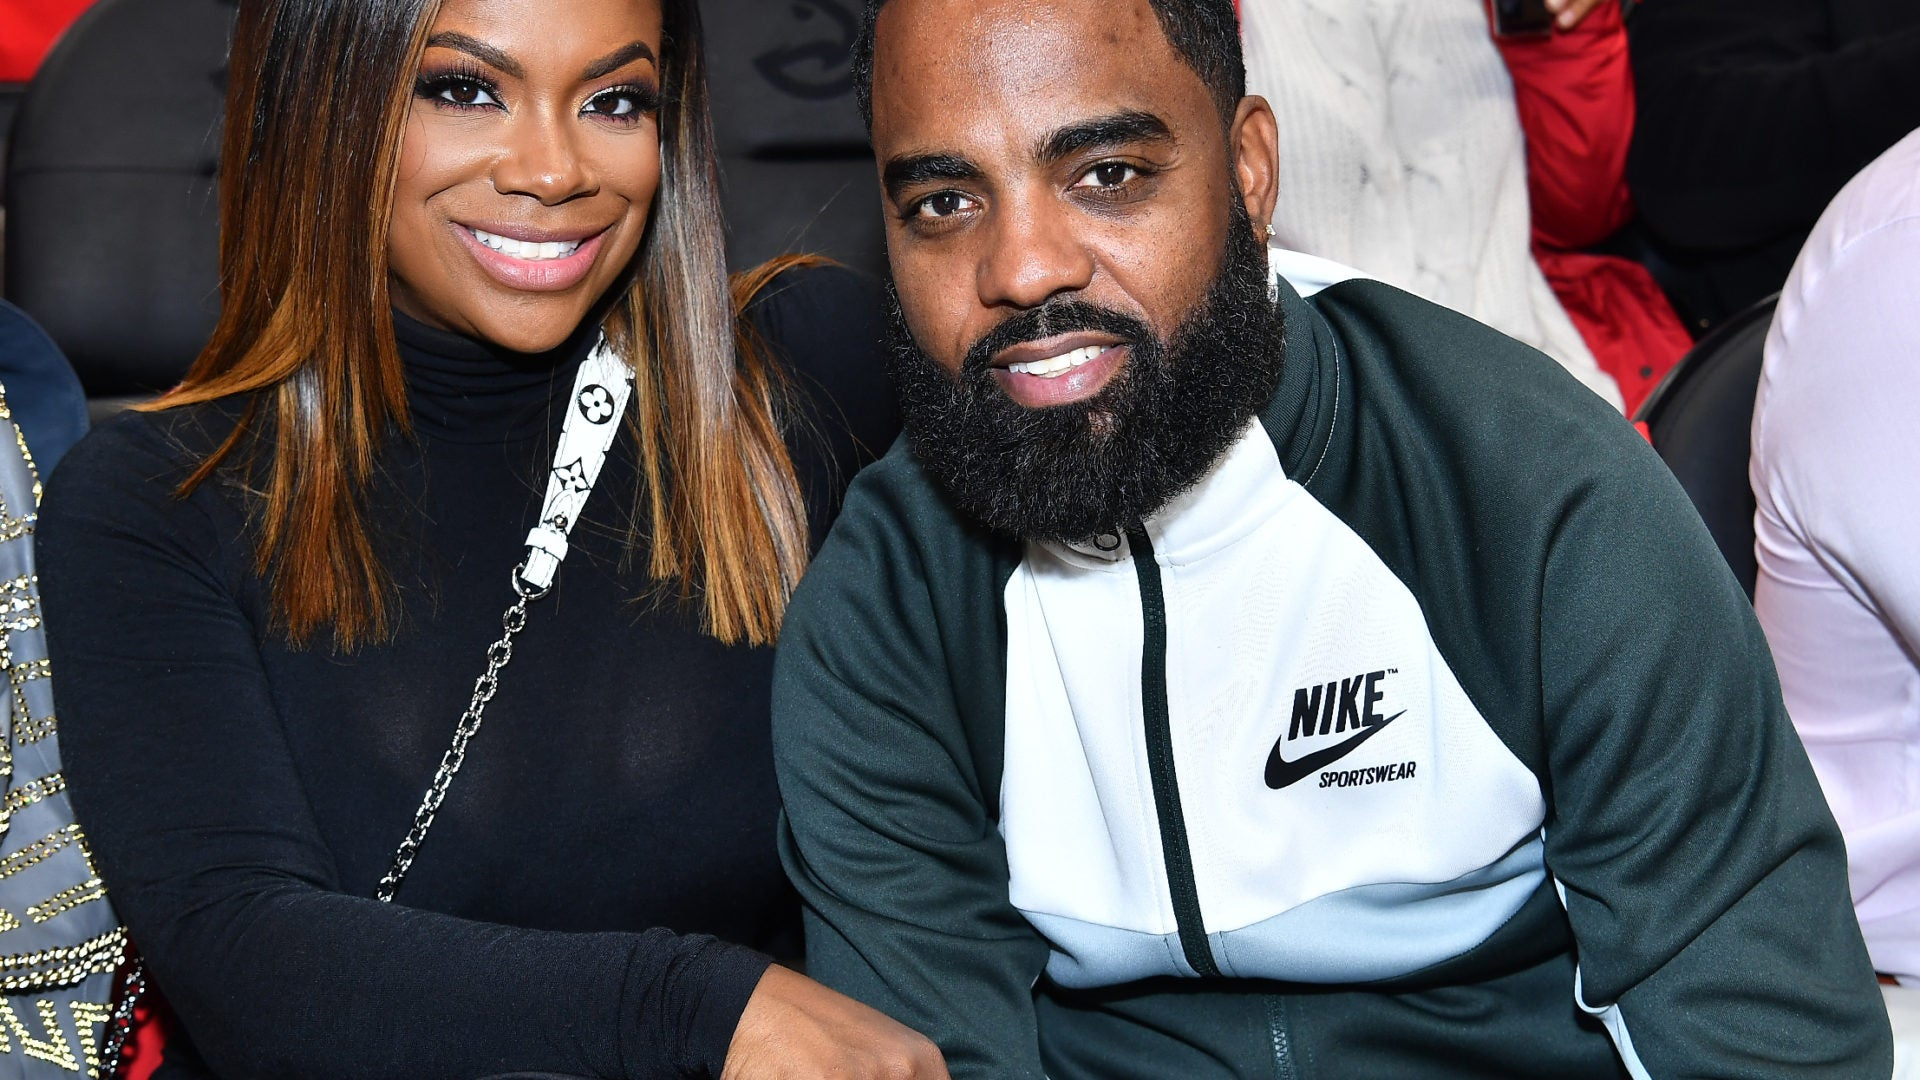 Kandi Burruss Welcomes Her Second Child With Todd Tucker